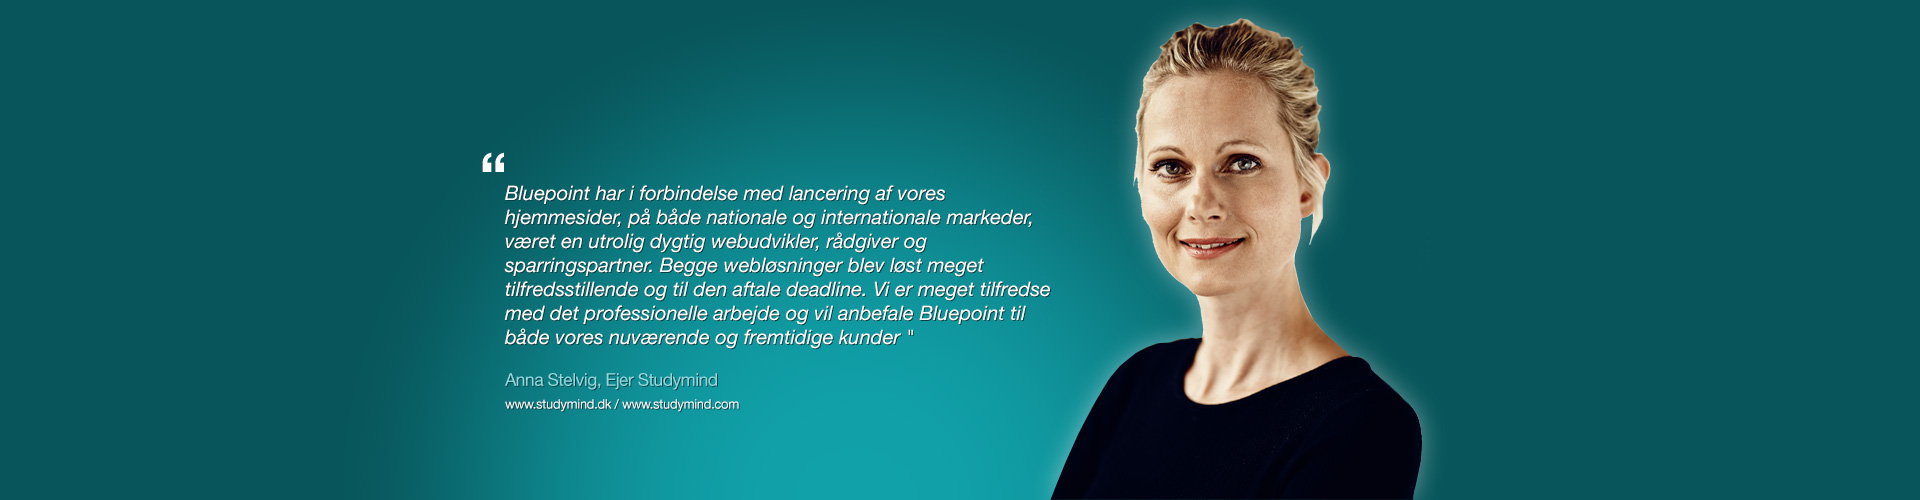 Webdesign og grafisk design for Studymind.dk